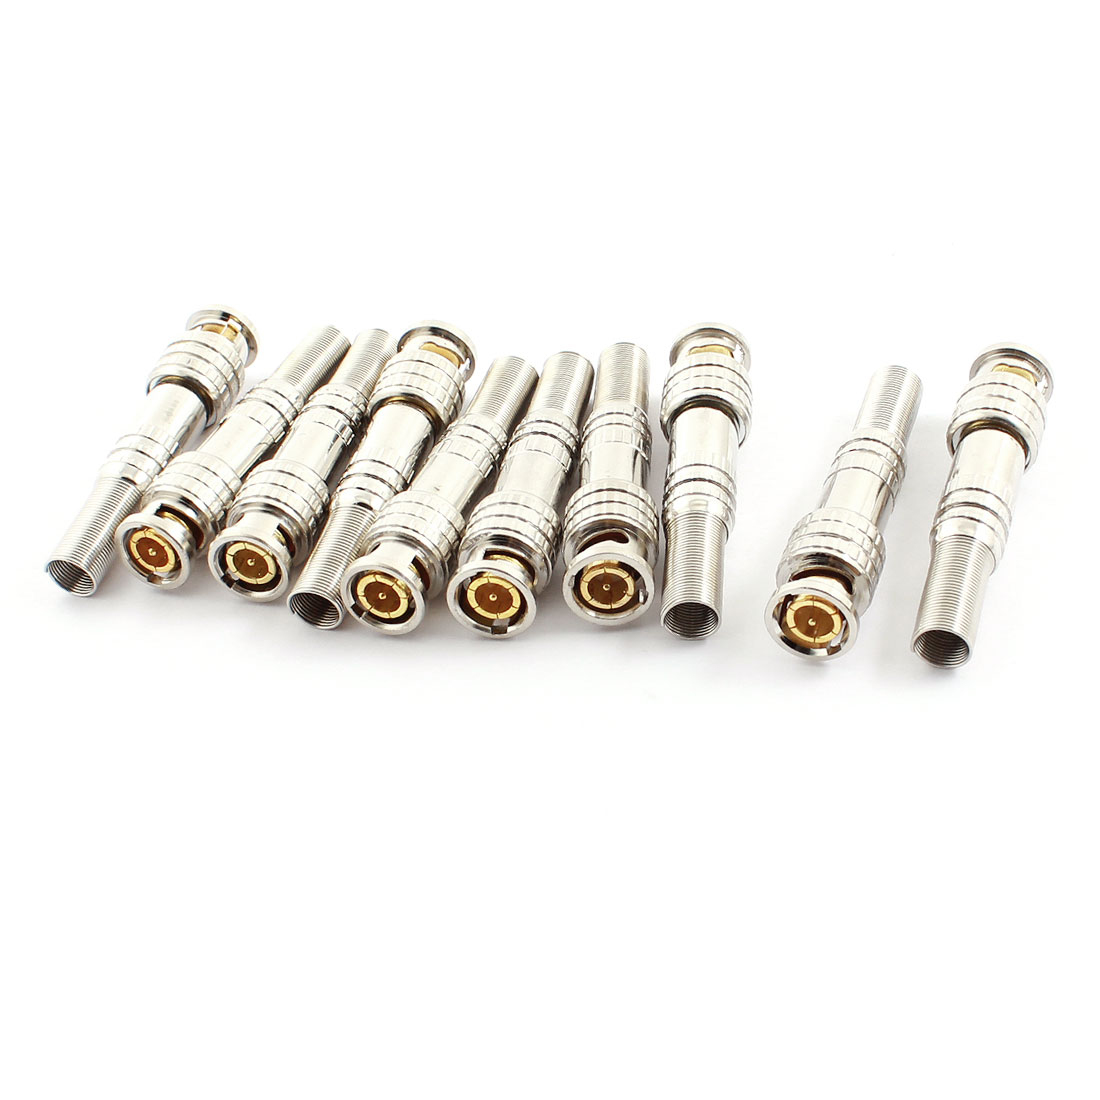 10 Pcs Weldless Spring RF Coaxial Cable BNC Male Jack Connector Adapter